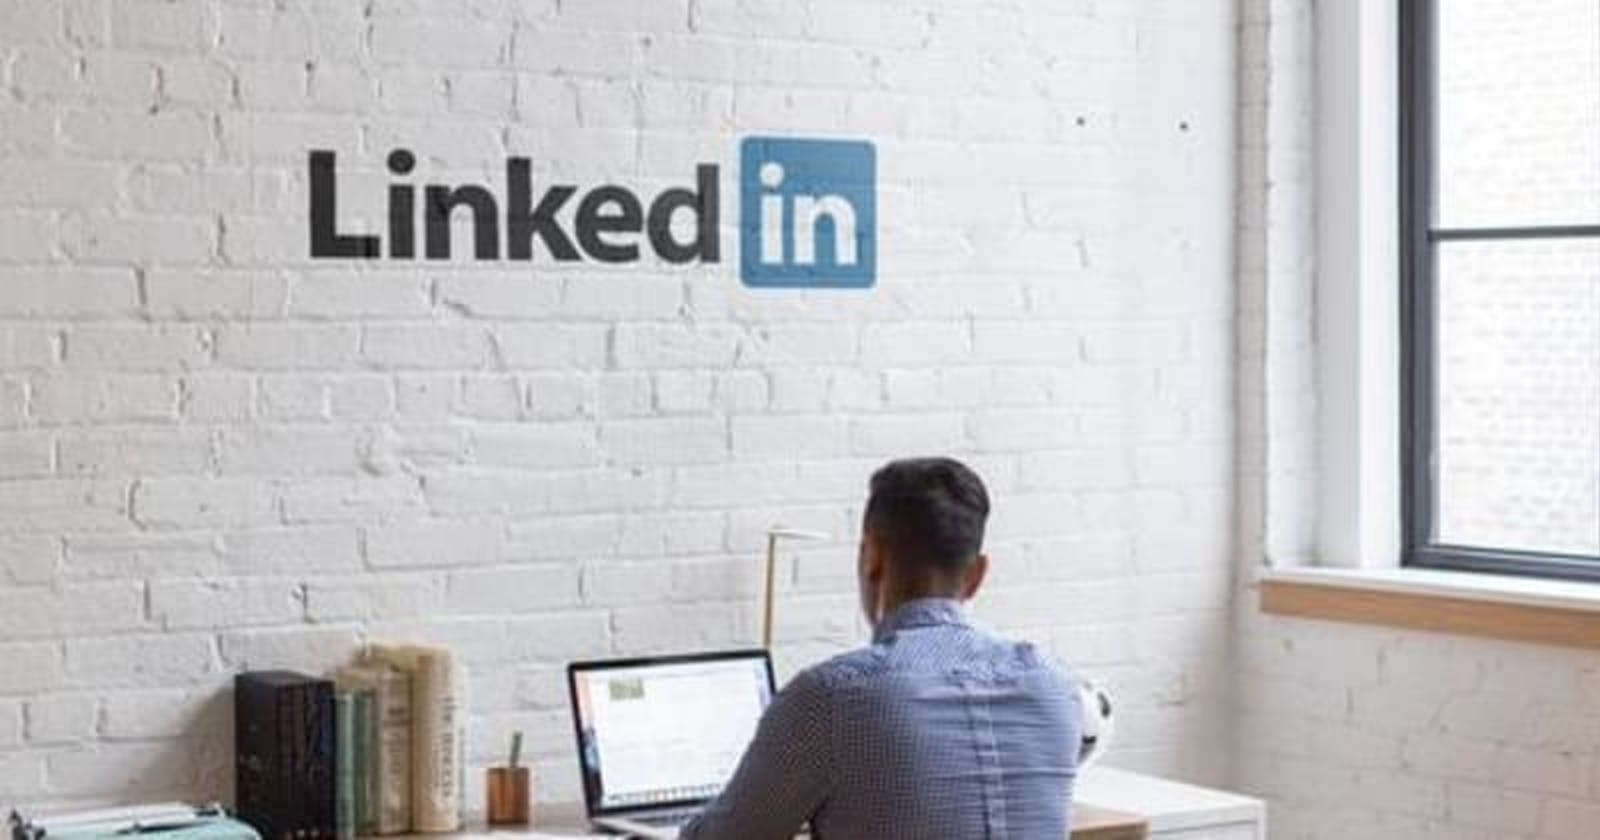 How I Got 500+ Connections and 3 Job Offers in 2 Months on Linkedin